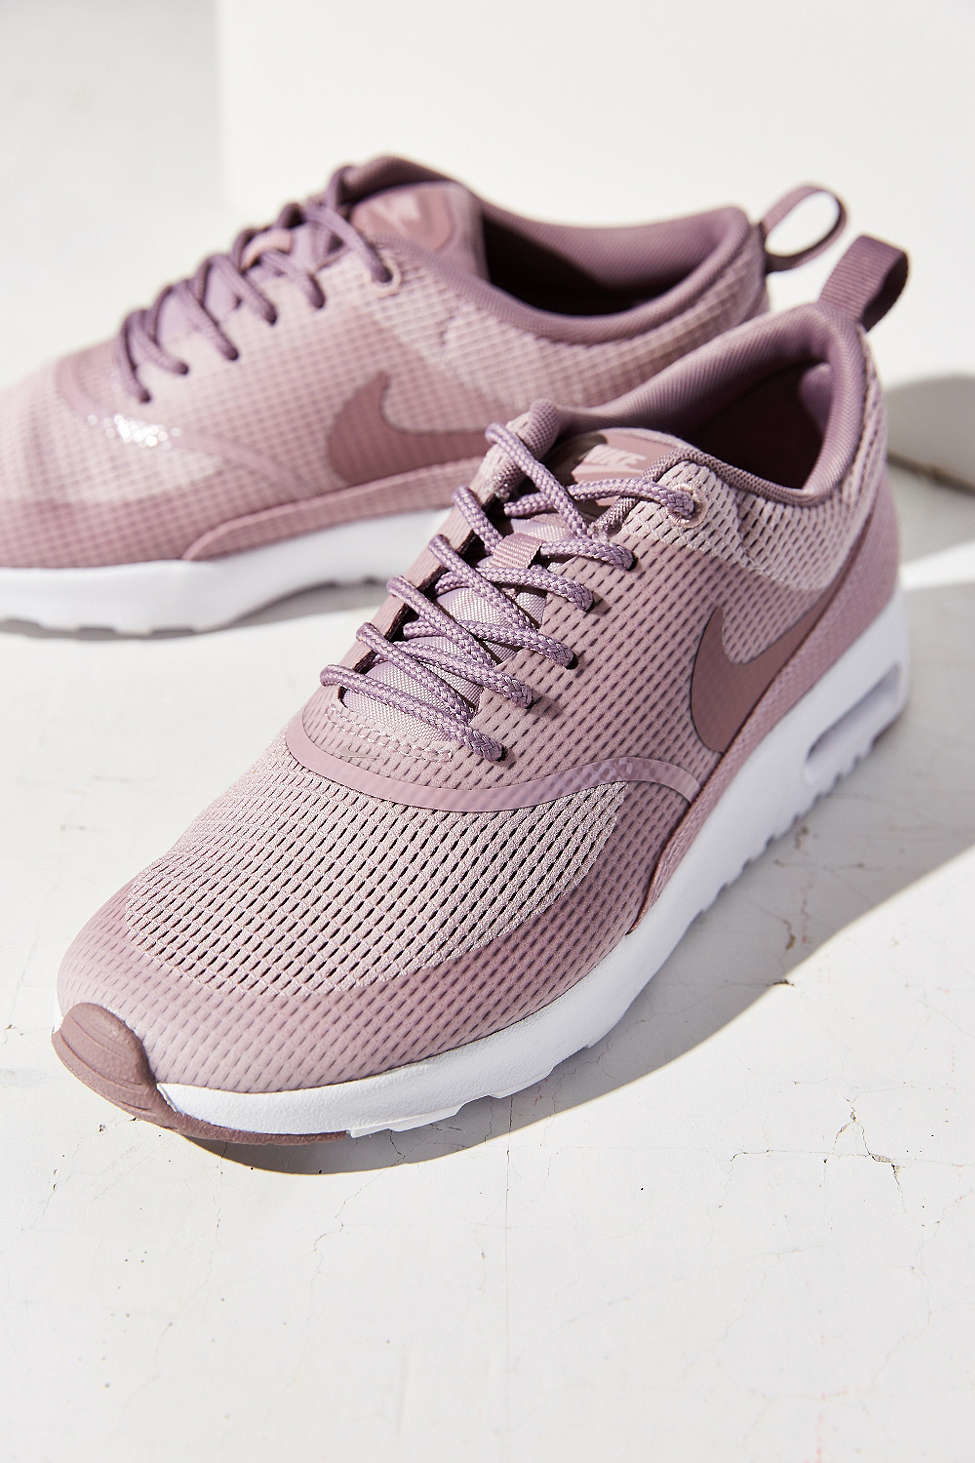 innovative design ec12c e8f83 Nike Air Textile Max Lyst Sneaker Purple Thea in AxpZwT